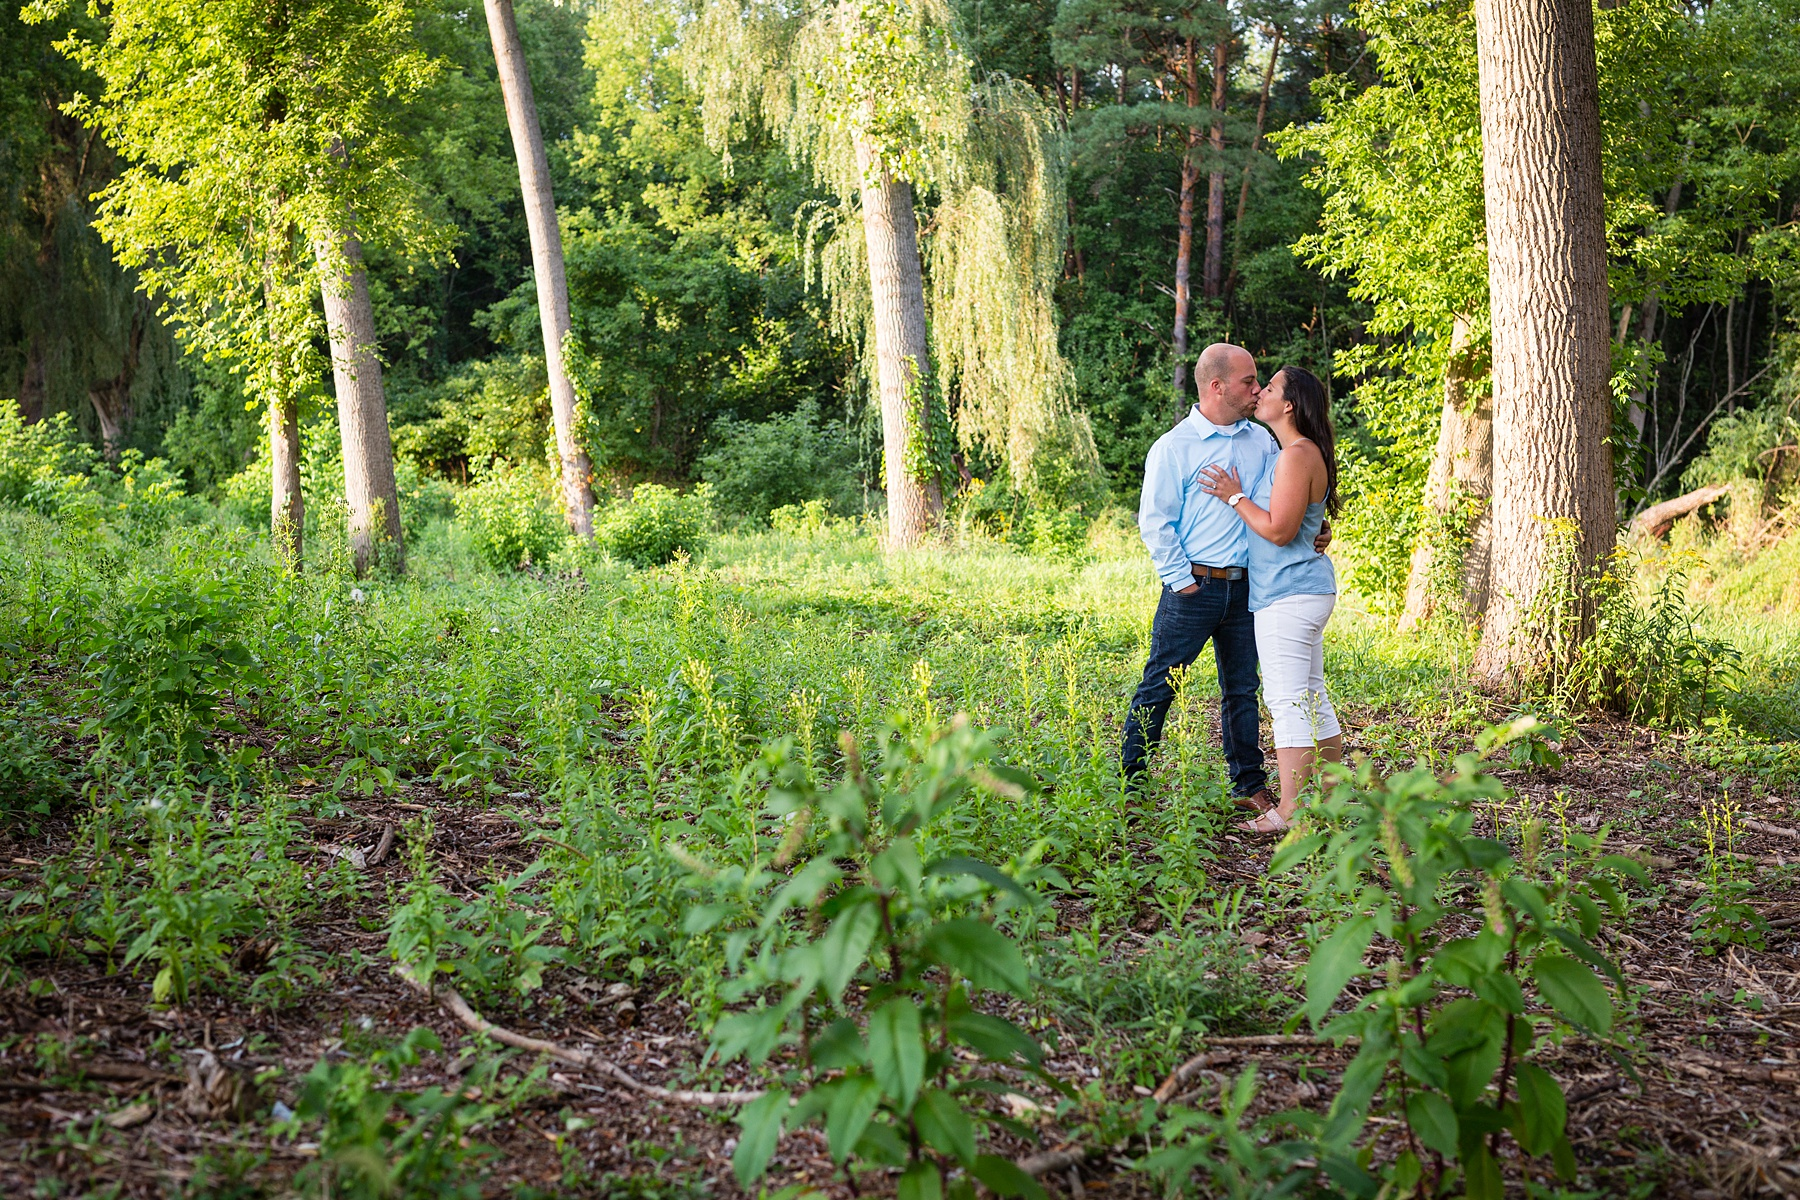 Brandon_Shafer_Photography_Danielle_Matt_Apple_Orchard_Engagement_Photos_0023.jpg